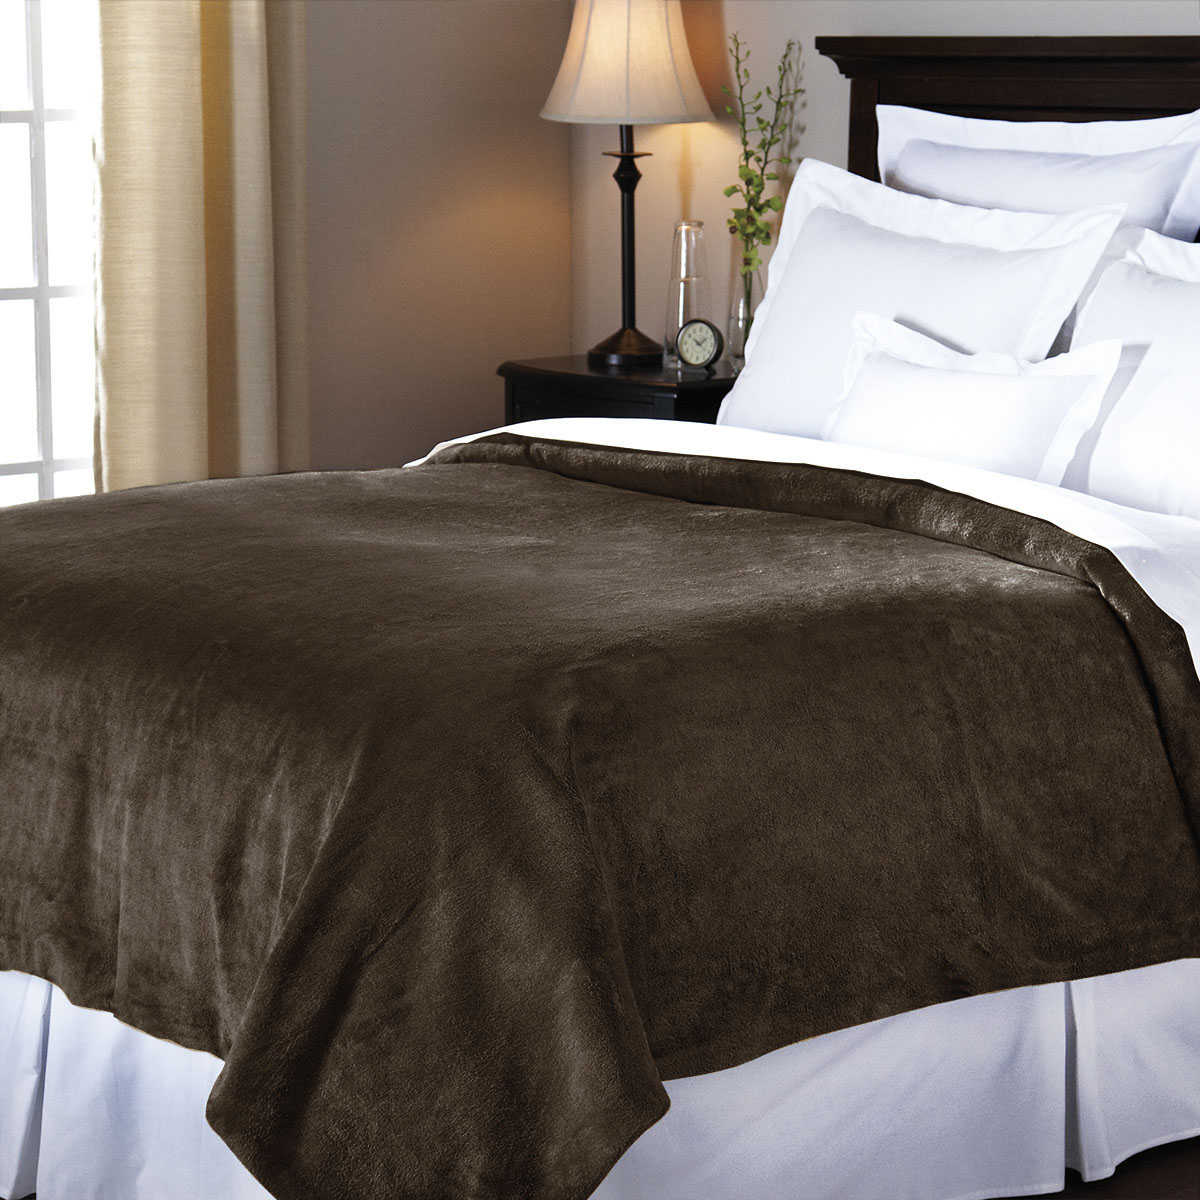 couverture chauffante sunbeam royal mink 1 place noyer sunbeam canada. Black Bedroom Furniture Sets. Home Design Ideas